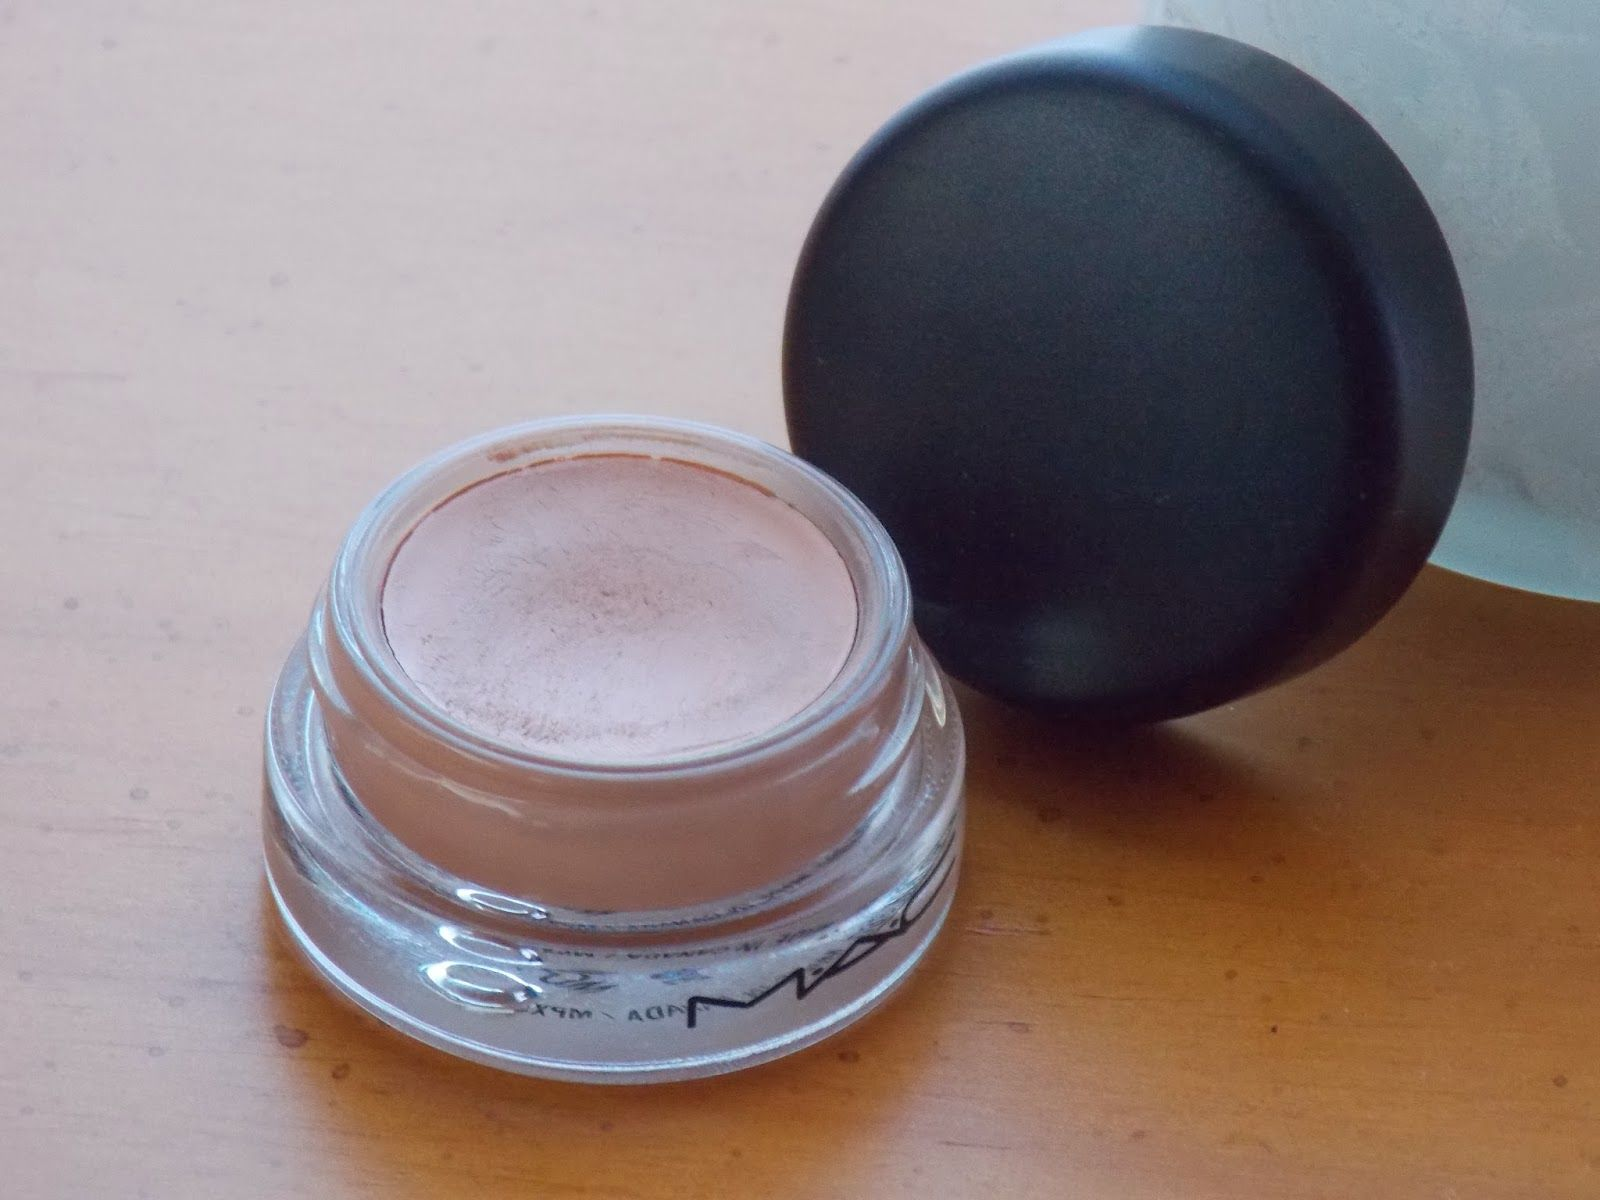 Mac Pro Longwear Paint Pot In Layin Low Wear As A Base For Eye